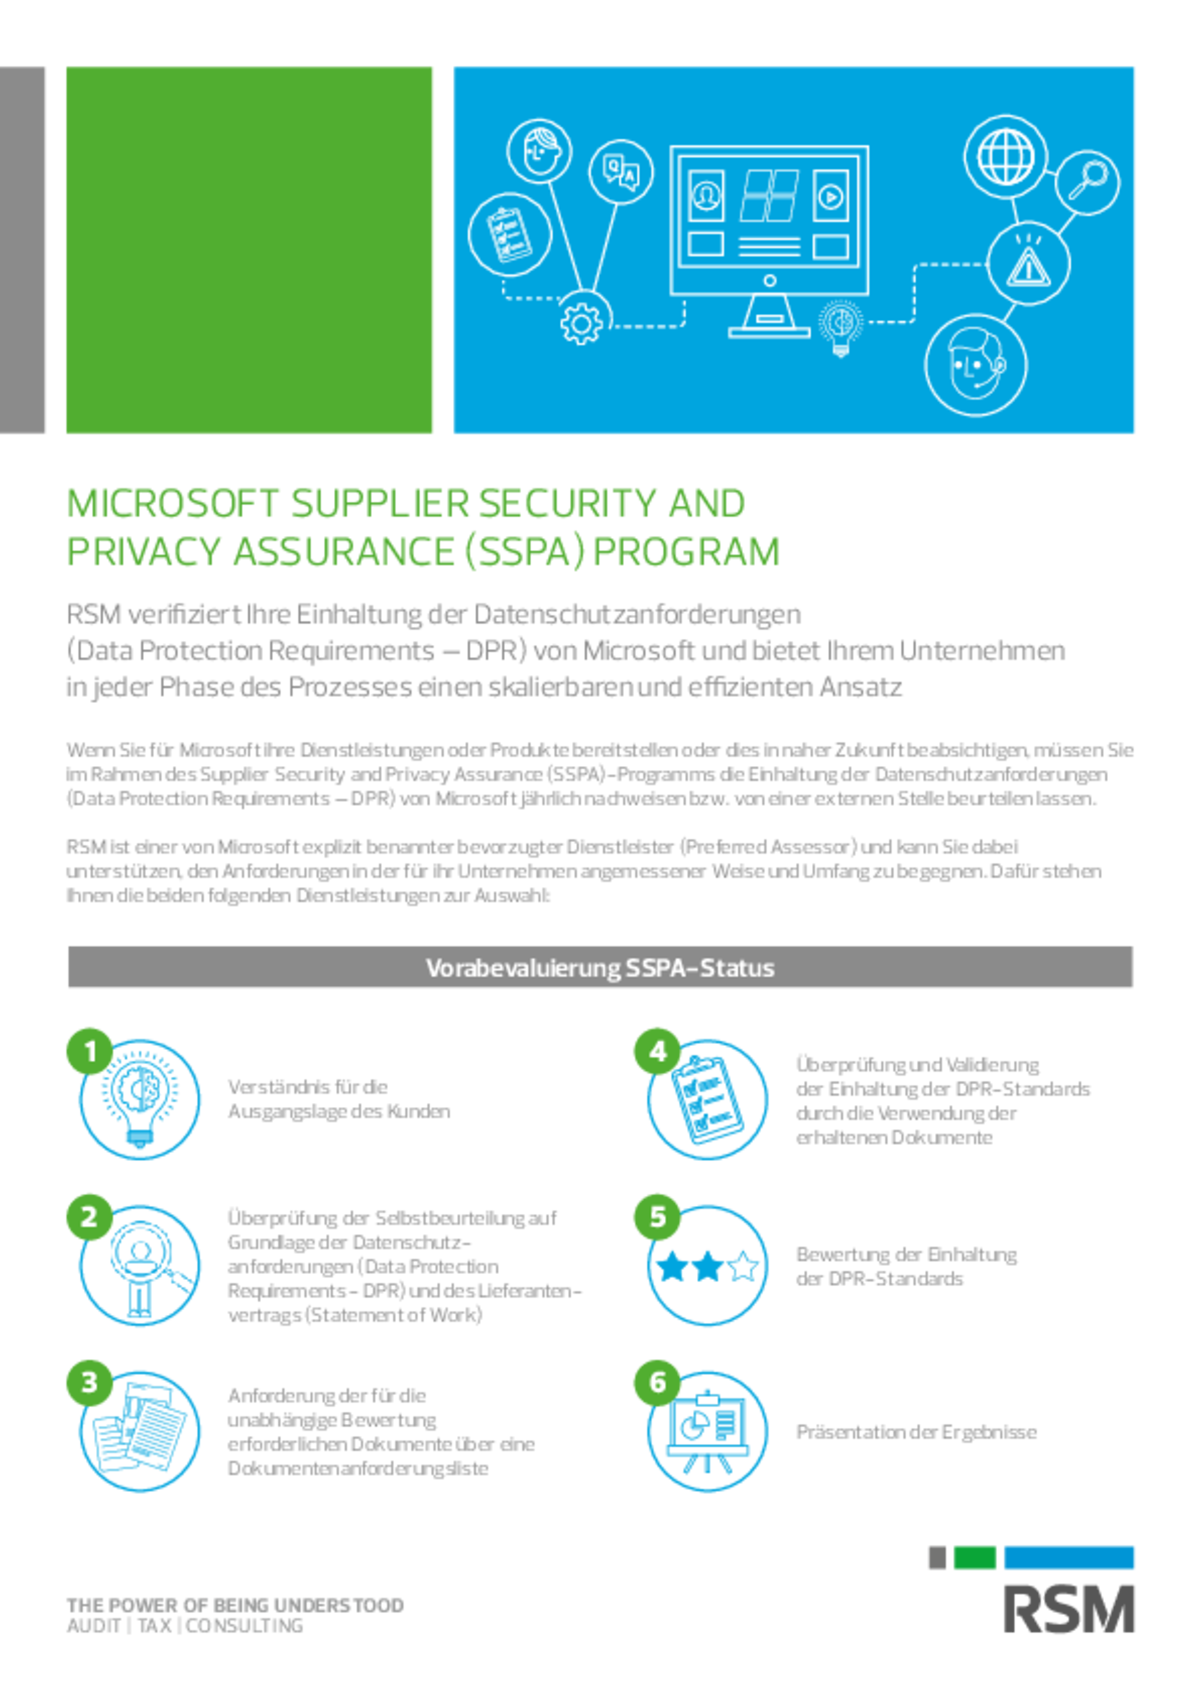 Microsoft Supplier Security and Privacy Assurance (SSPA) Program